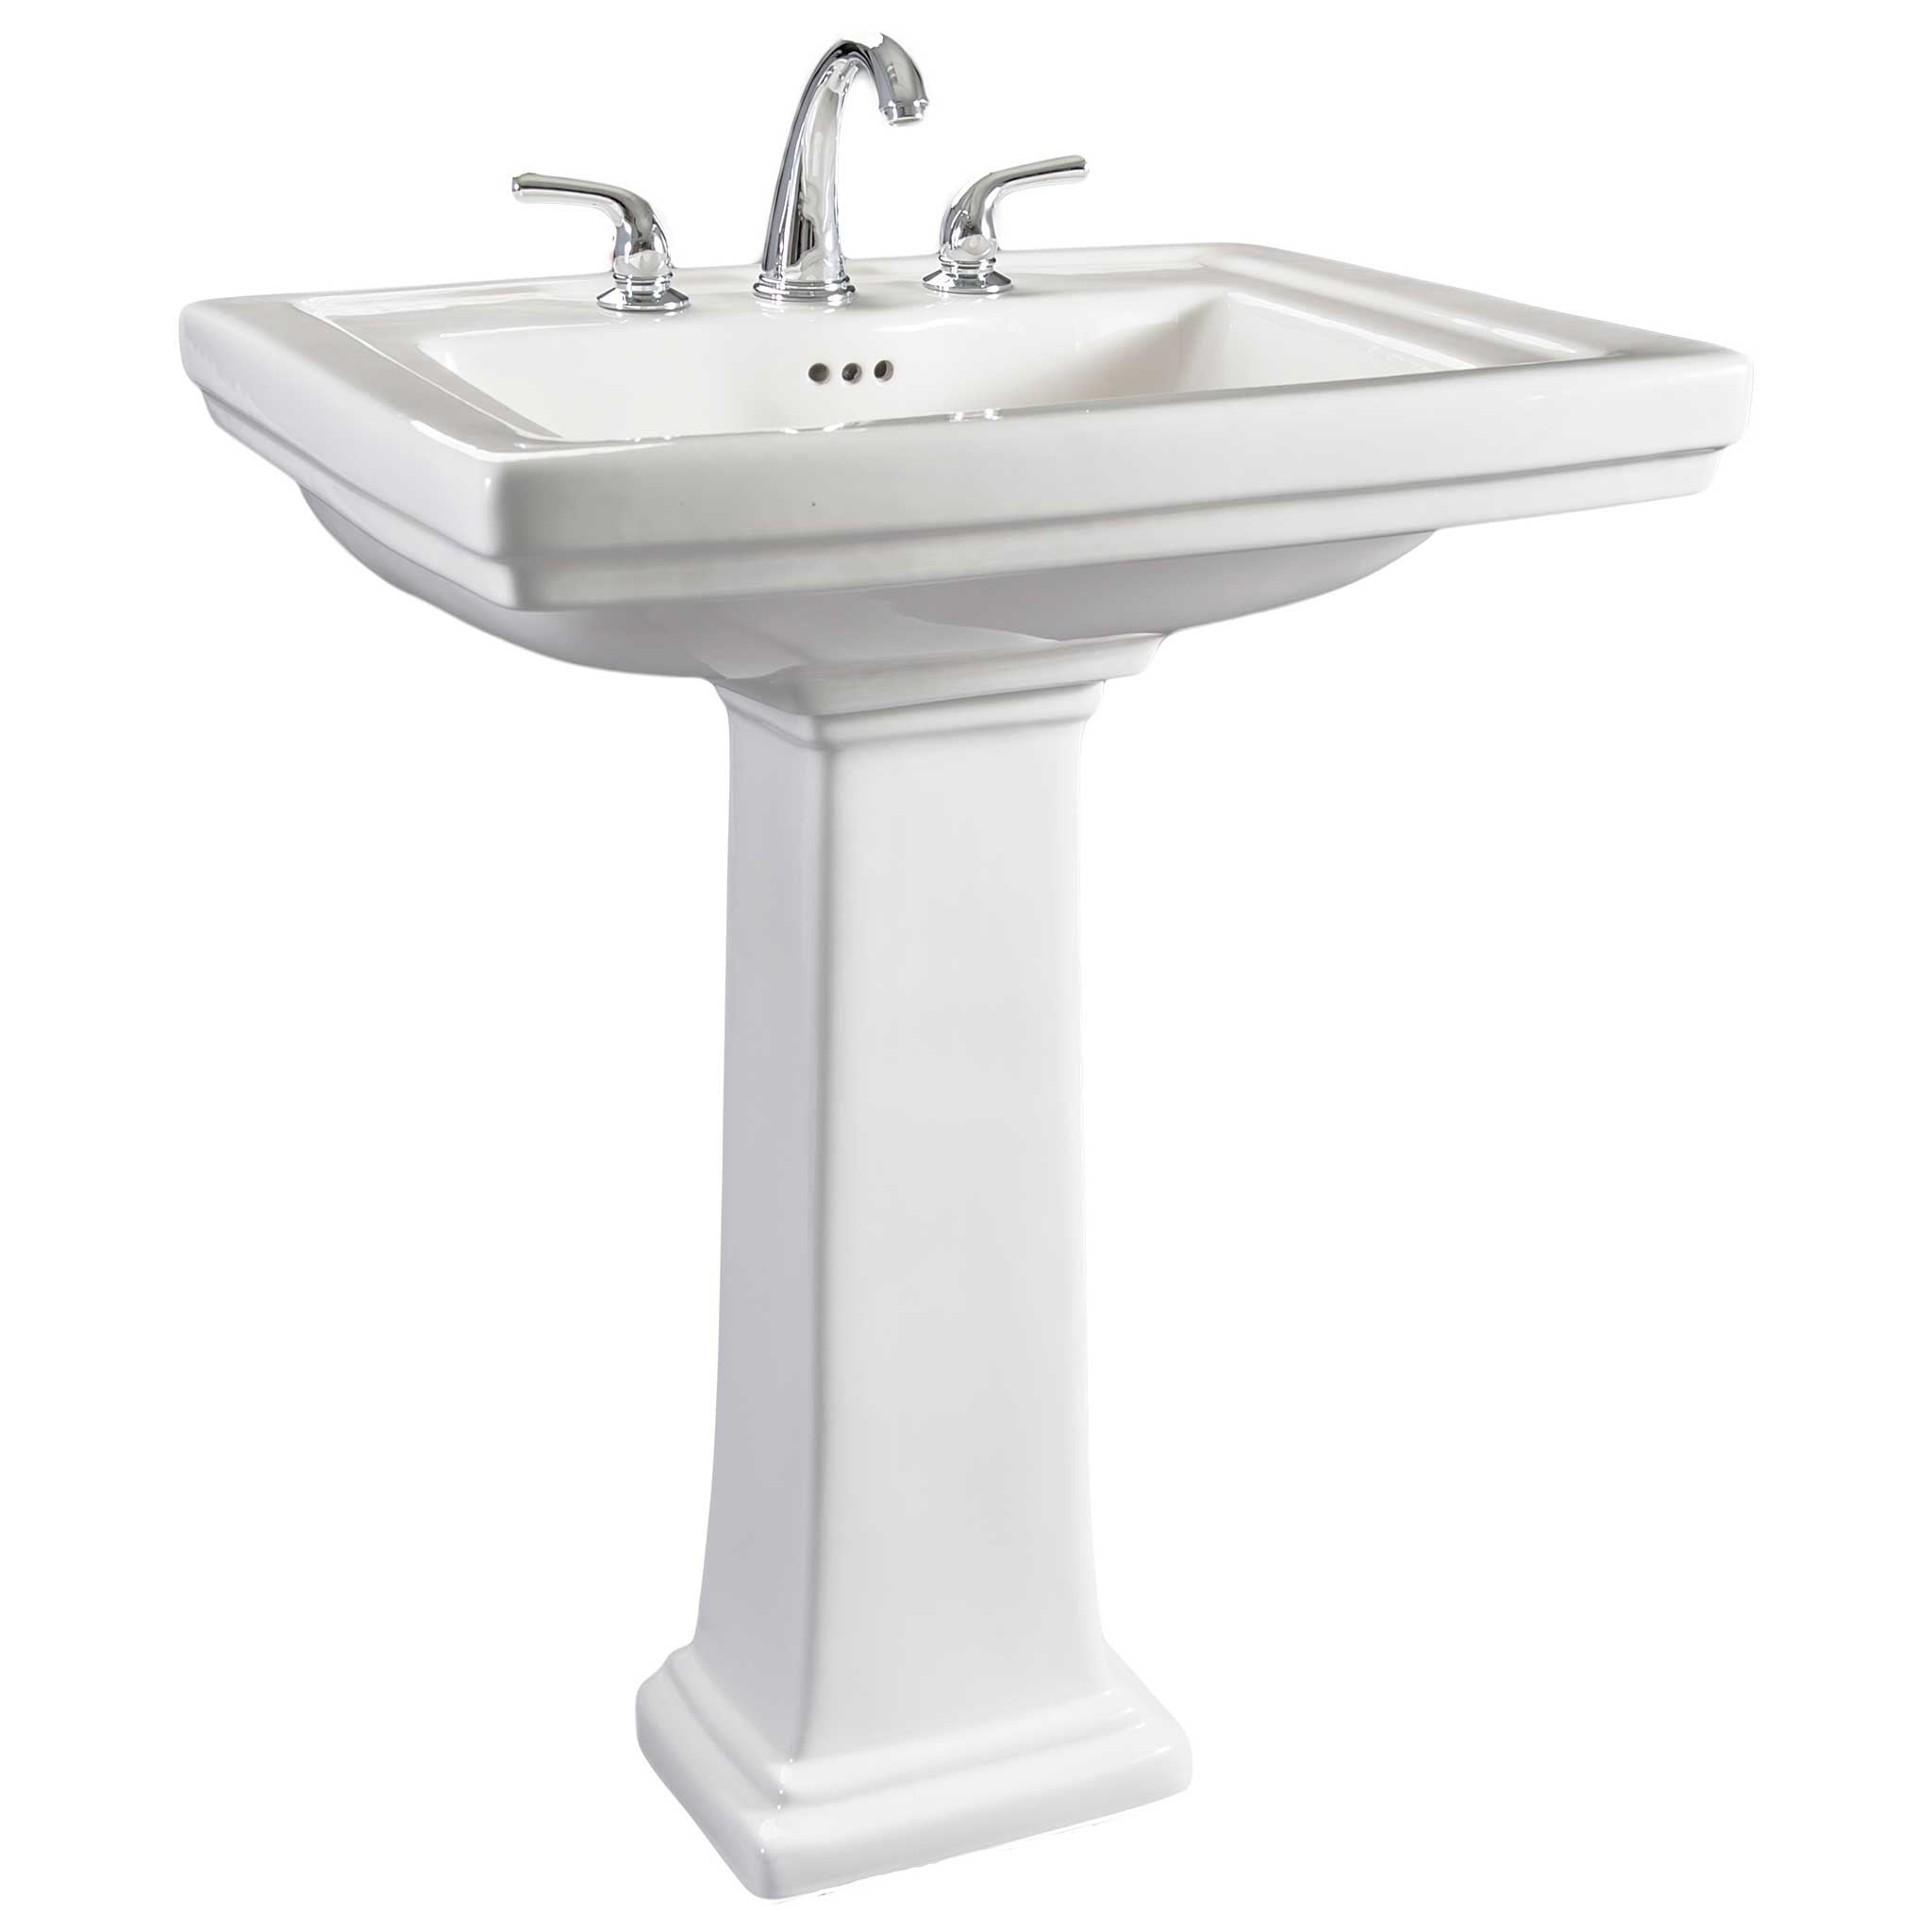 bathroom american mid sinks edge ceramic scalloped white faucets size sale standard inch corner fixtures of porcelain century compact by for french sink rare medium fine pedestal